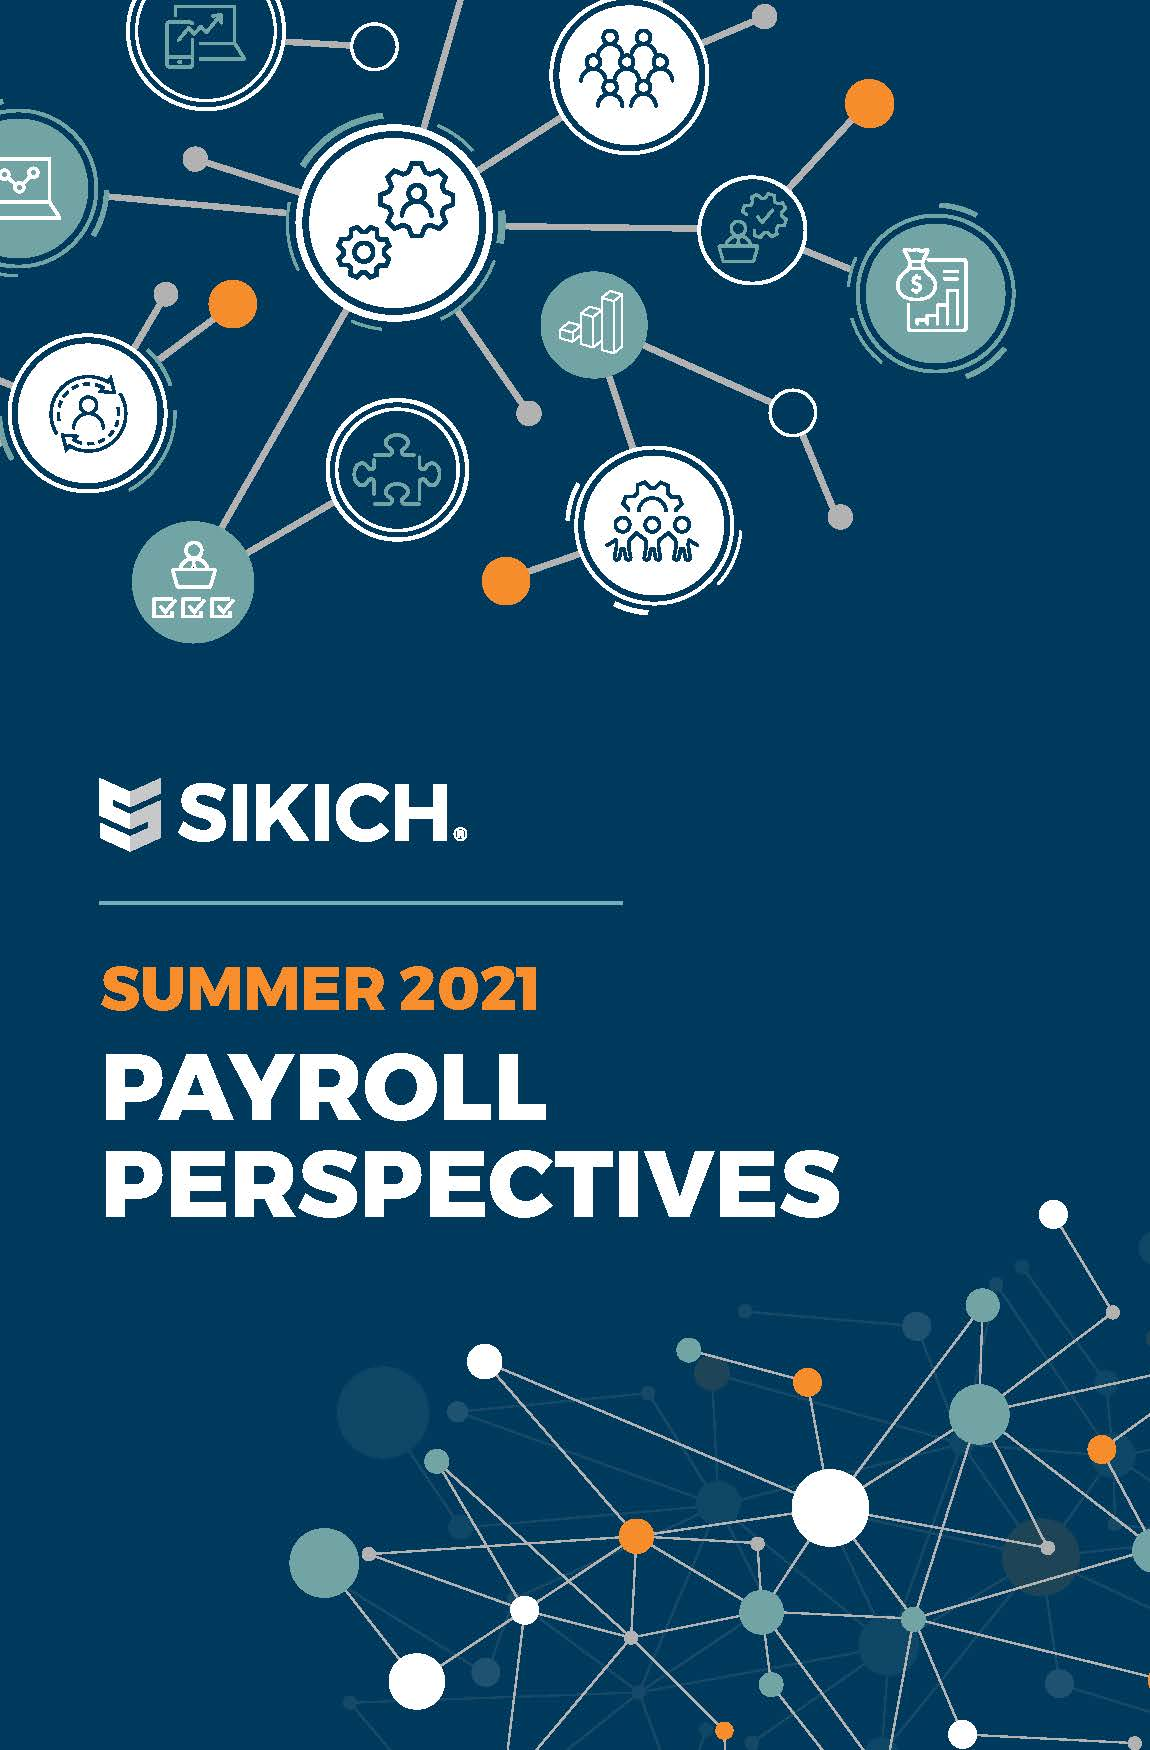 Sikich Human Capital and Payroll Perspectives 2021 Cover Image